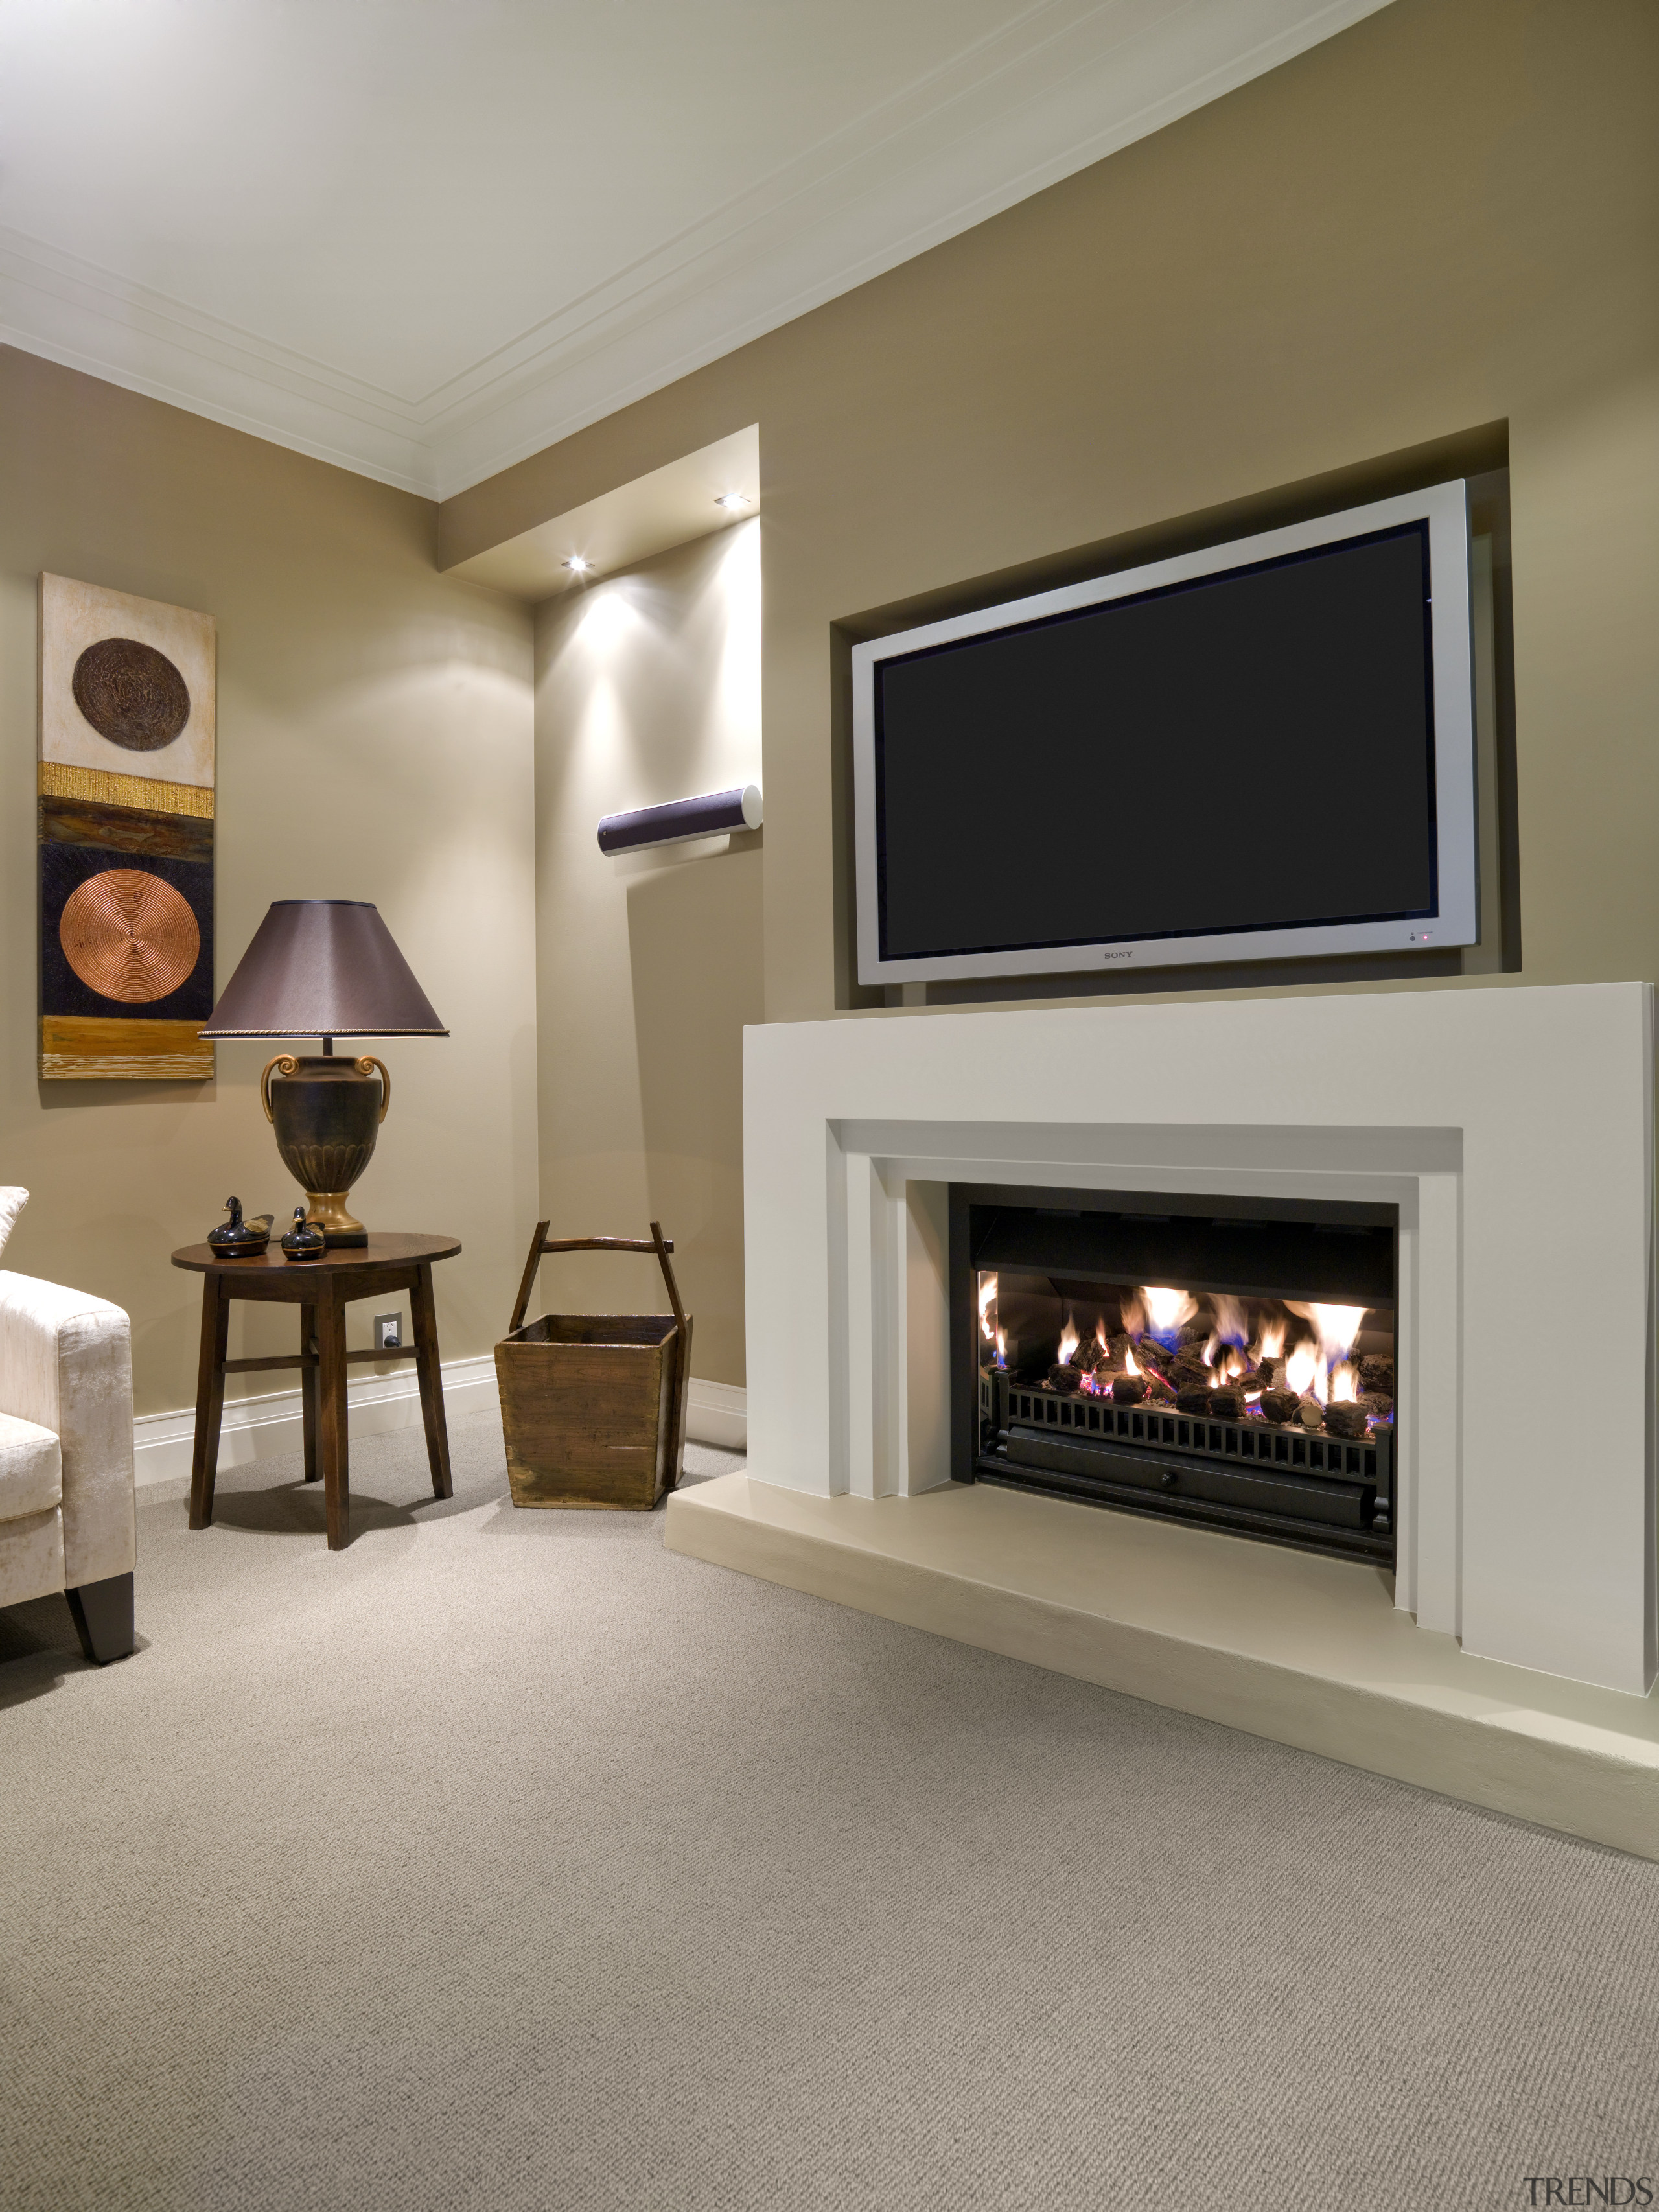 A view of some interior paints from Resene. fireplace, floor, flooring, hearth, home, interior design, living room, room, wood burning stove, gray, brown